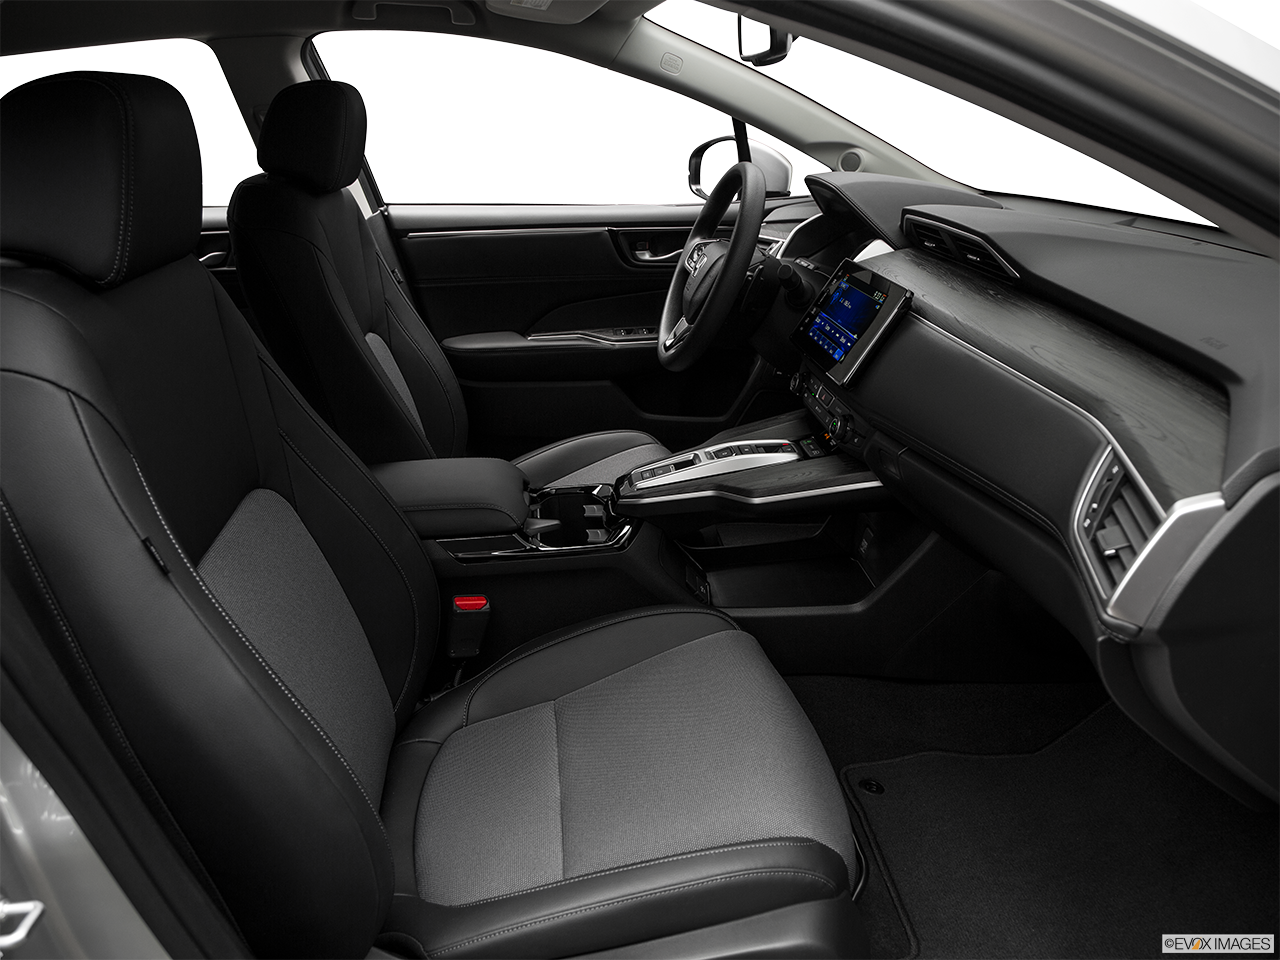 Interior view of the Honda Clarity Plug-In Hybrid